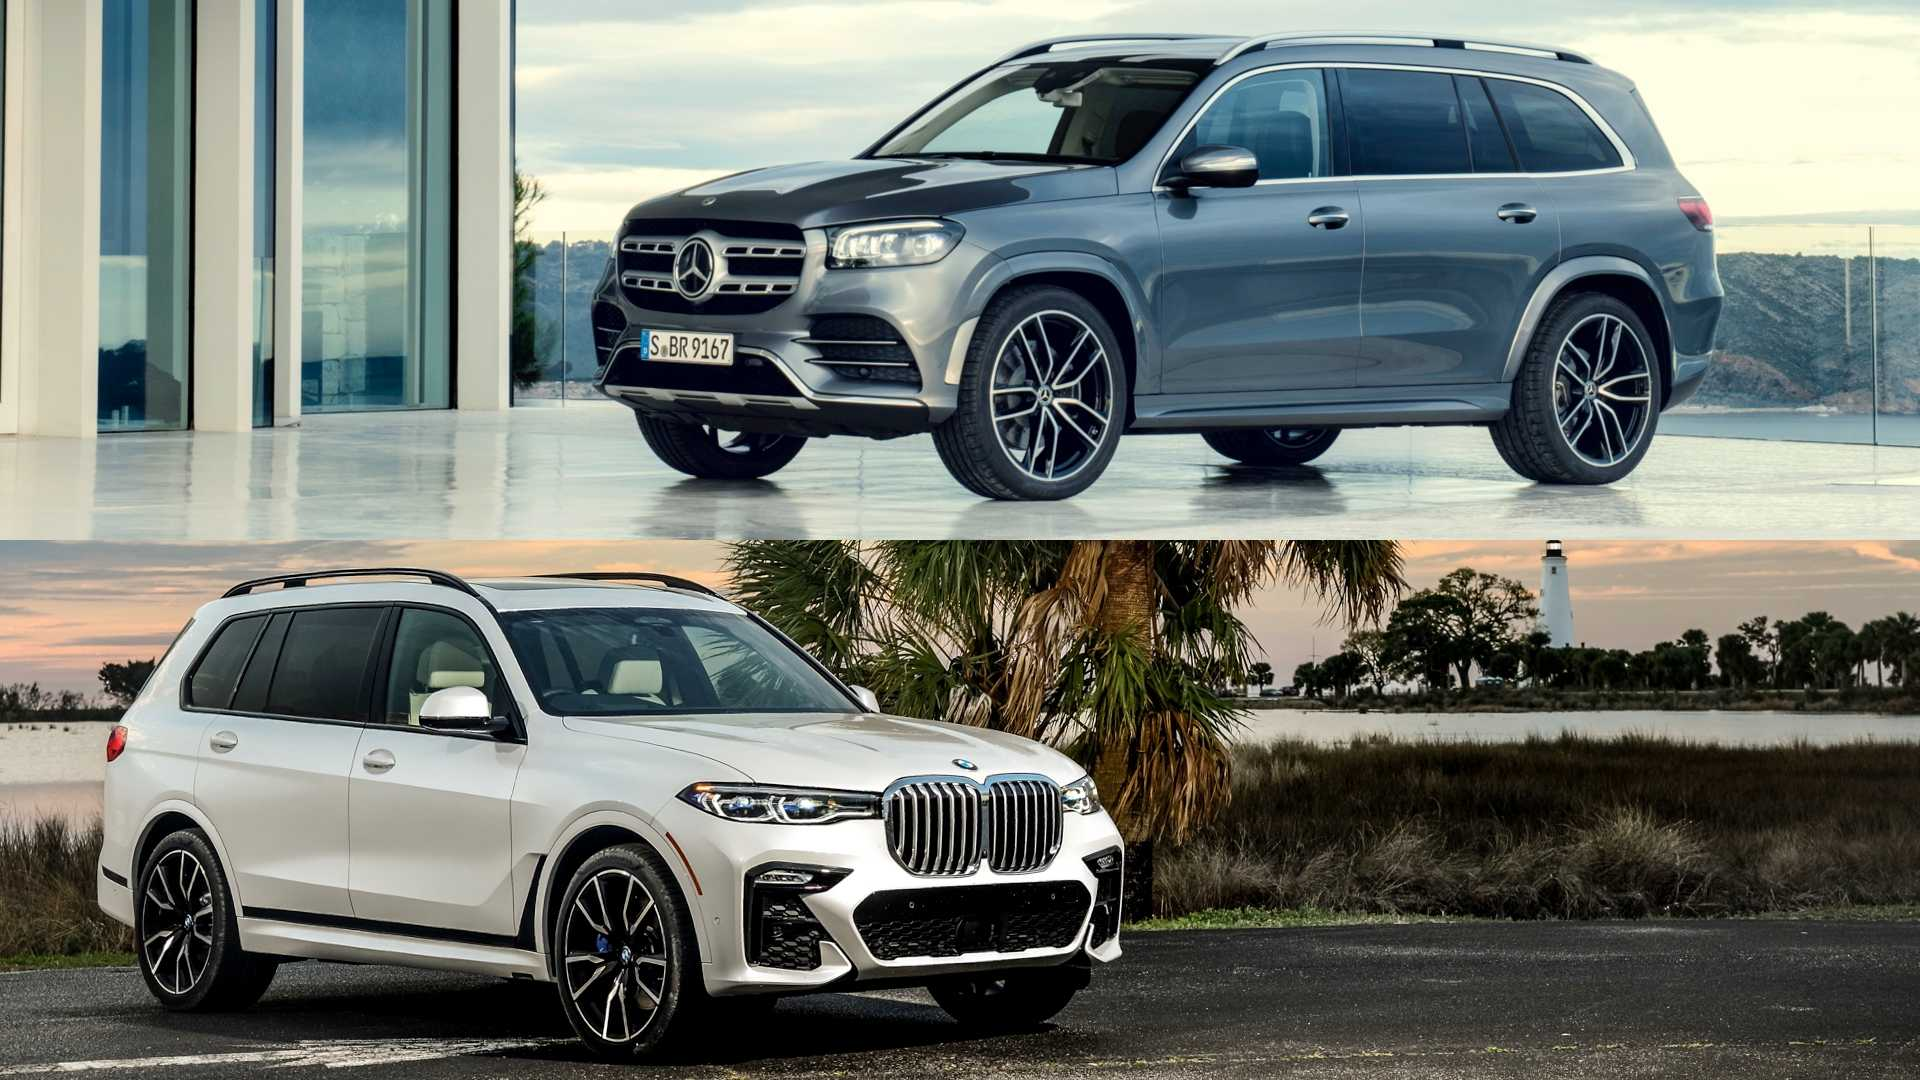 24 A BMW X7 Vs Mercedes Gls 2020 Pictures